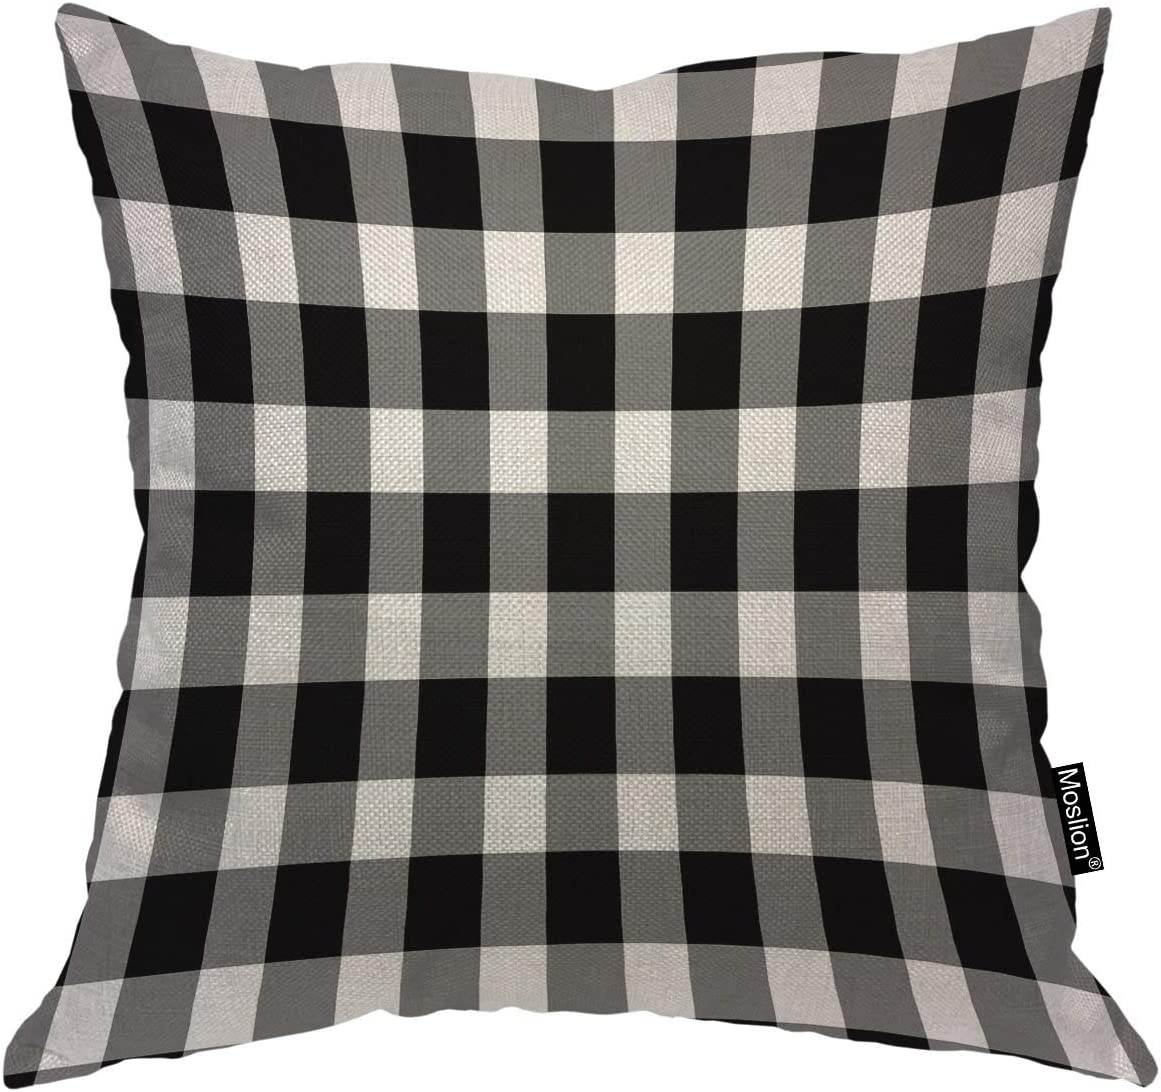 Moslion Gingham Pillow Cases 24x24 Inch